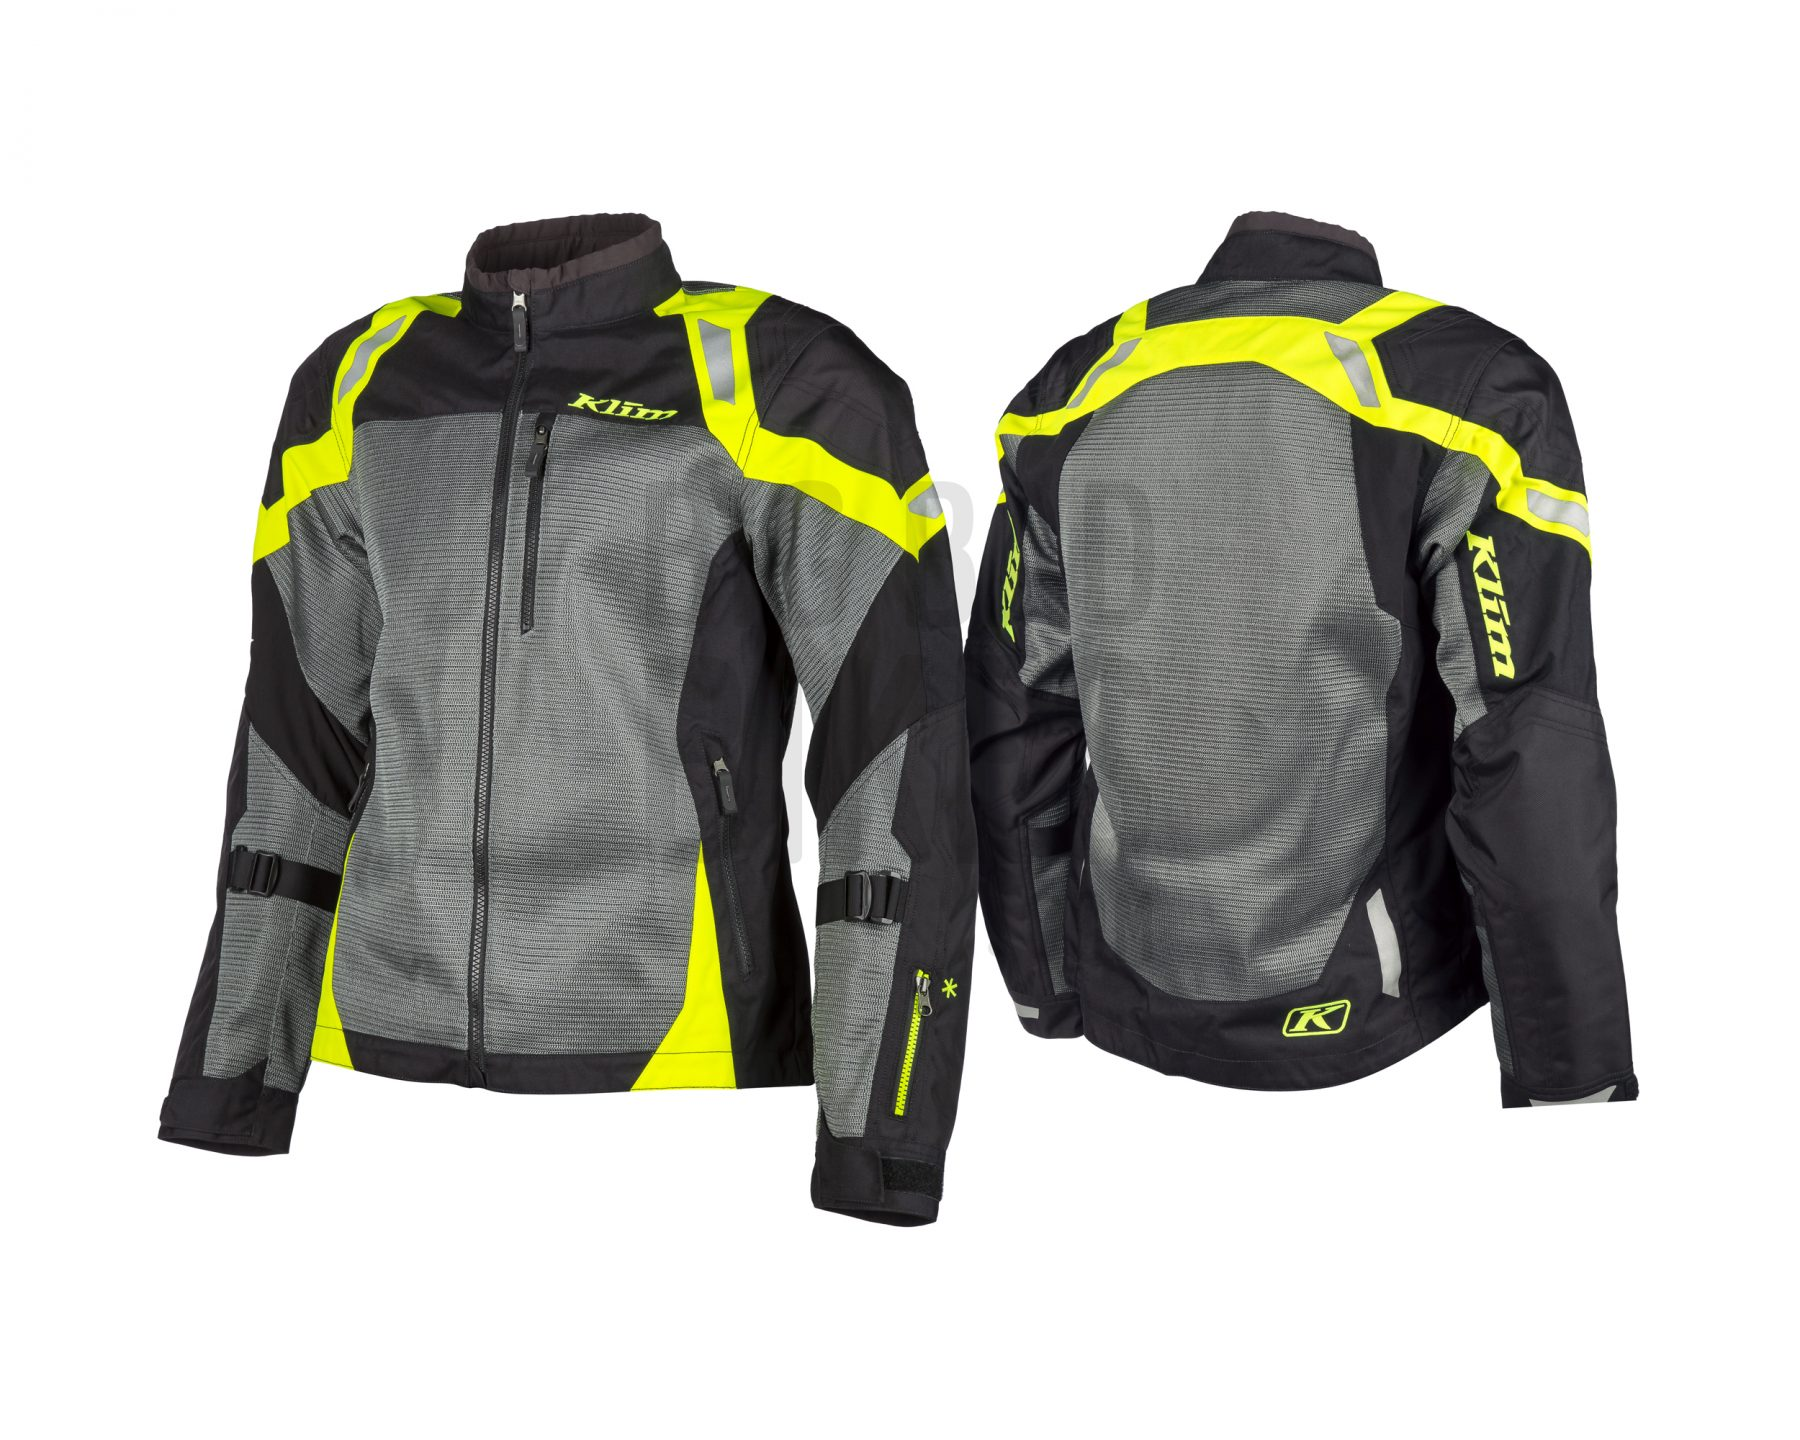 Induction Jacket_5060-002_High-Vis_Secondary__02